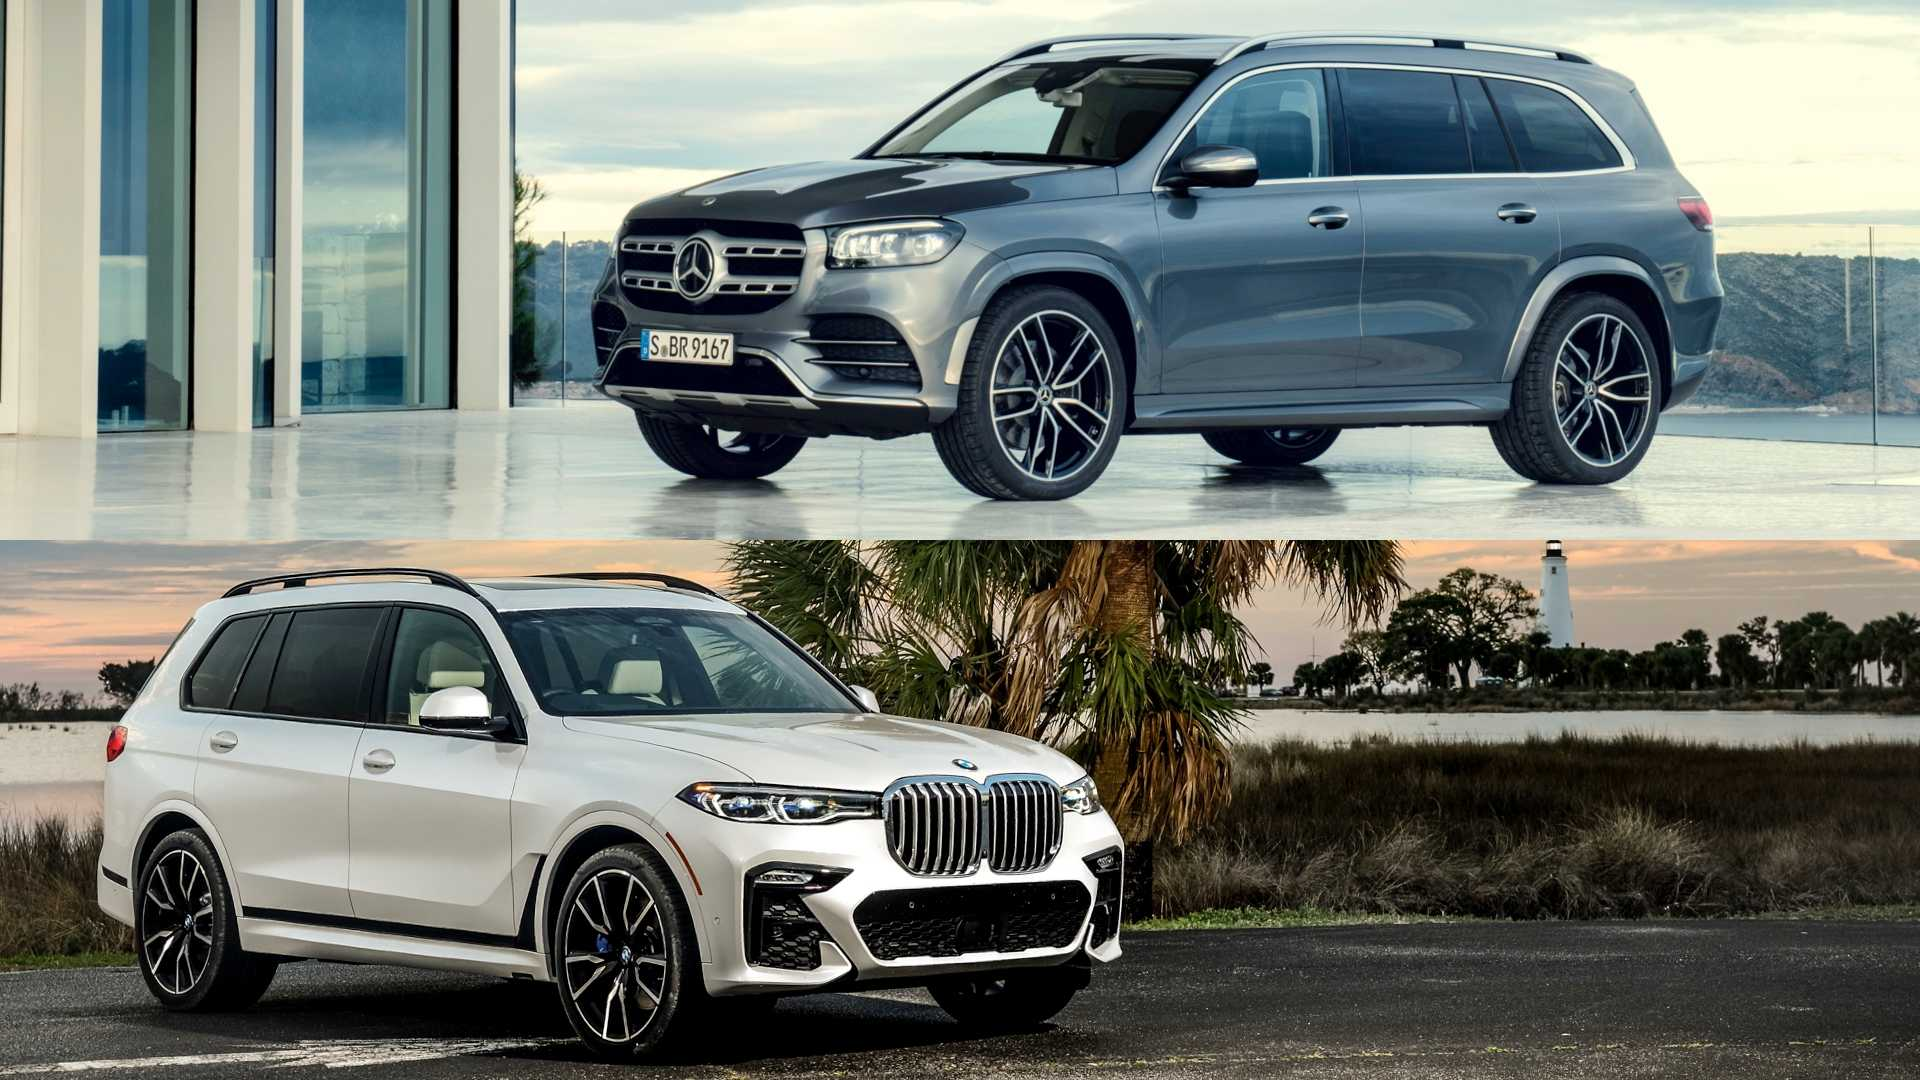 28 All New Bmw X7 2020 Redesign And Concept